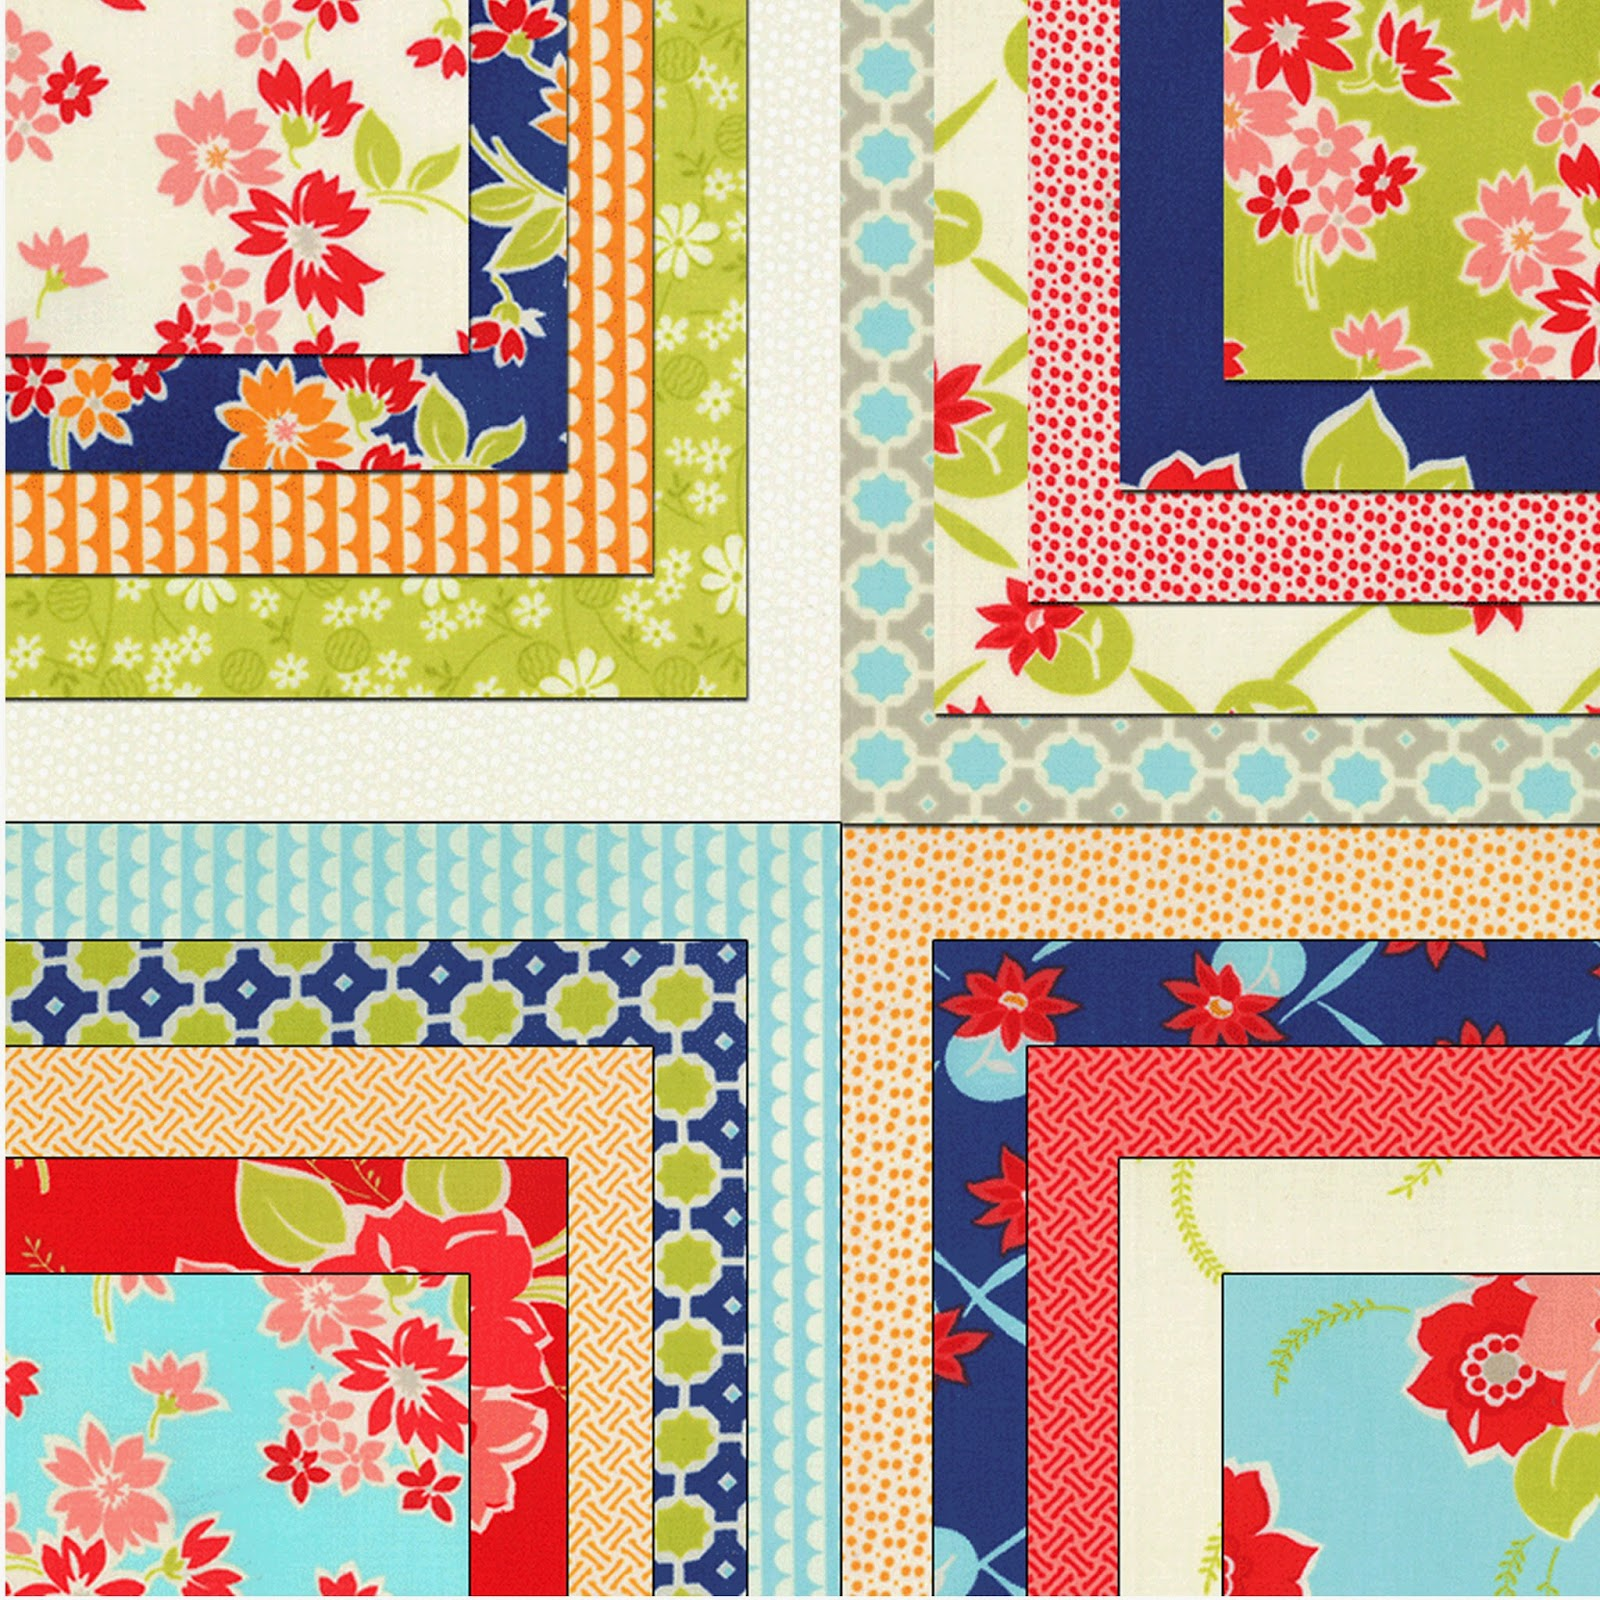 Moda MISS KATE Prints Flannels Quilt Fabric by Bonnie & Camille for Moda Fabrics